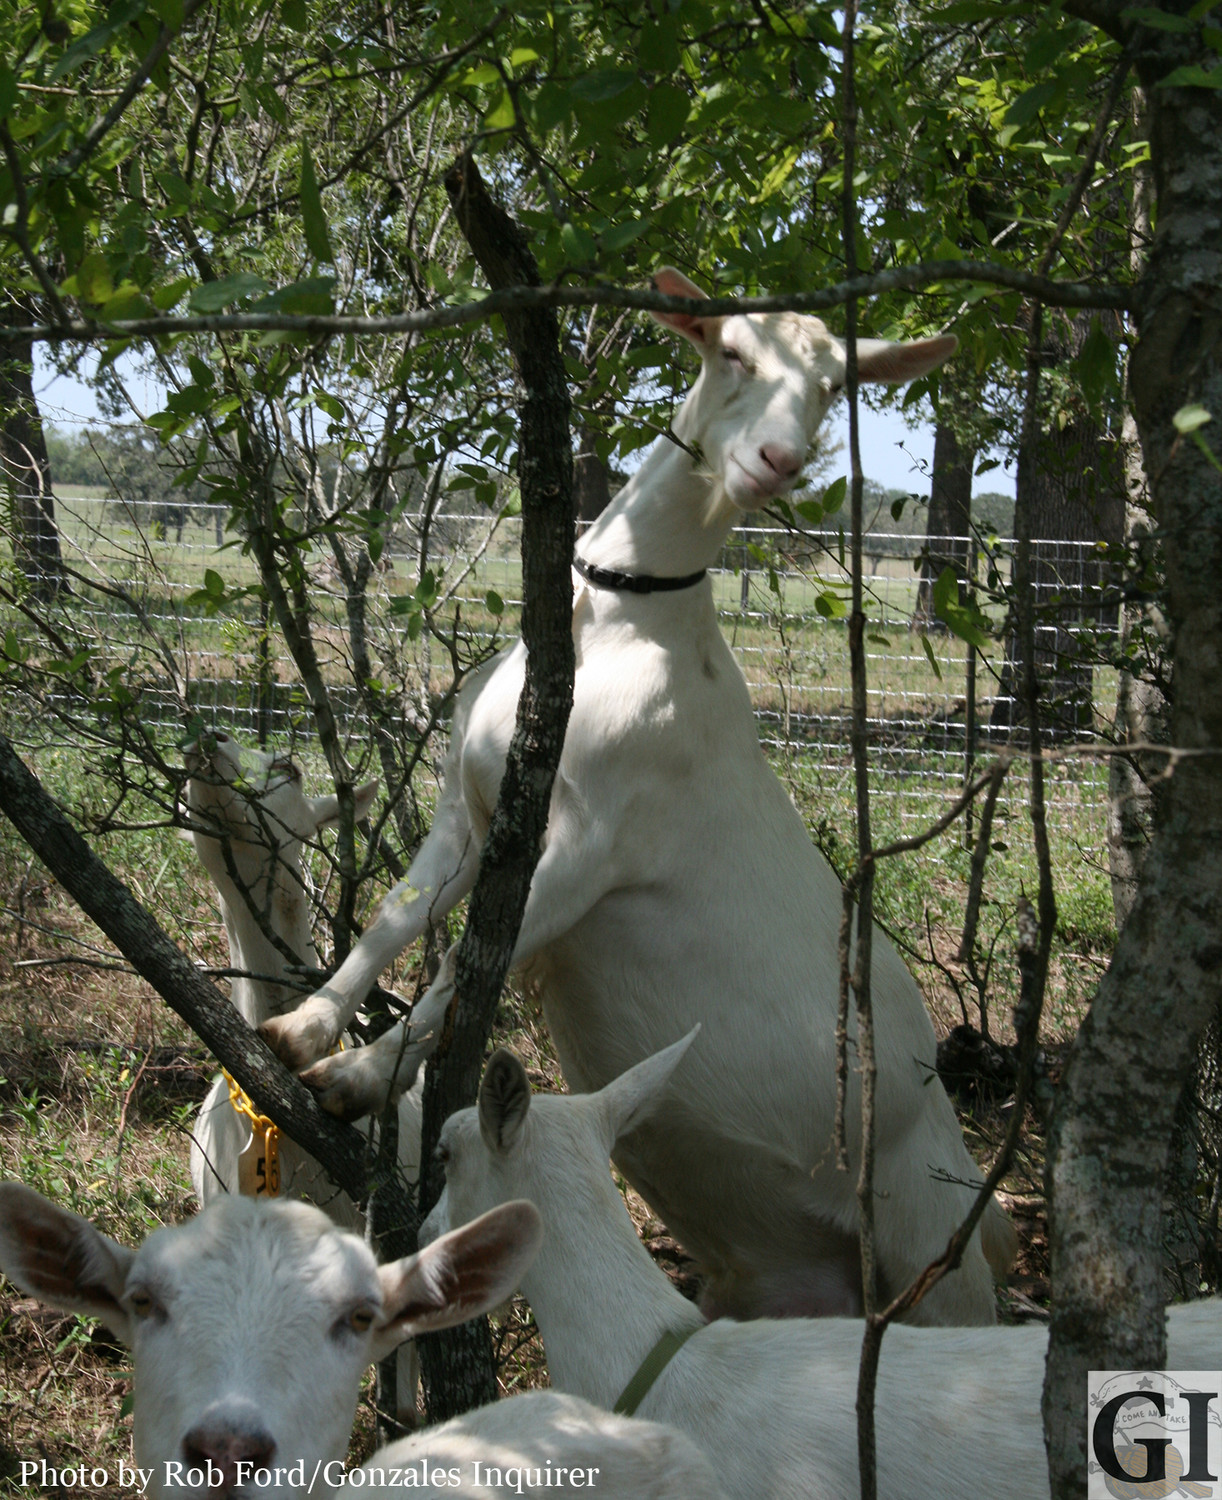 One of Kelly Allen's dairy goats hits the heights en route to a dinner of fresh mesquite leaves.